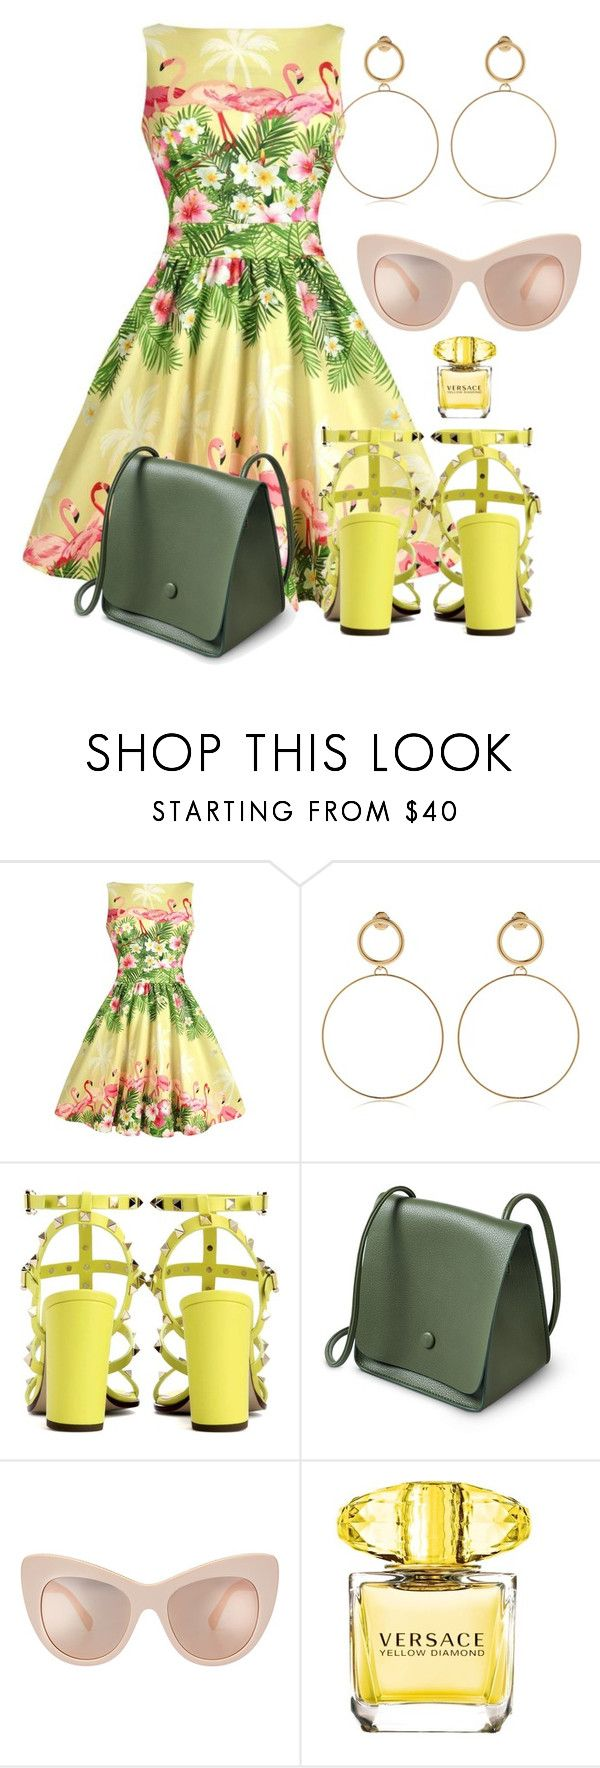 """She's in Barcelona"" by didiiidia on Polyvore featuring Flamant, Maria Francesca Pepe, Valentino and Versace"